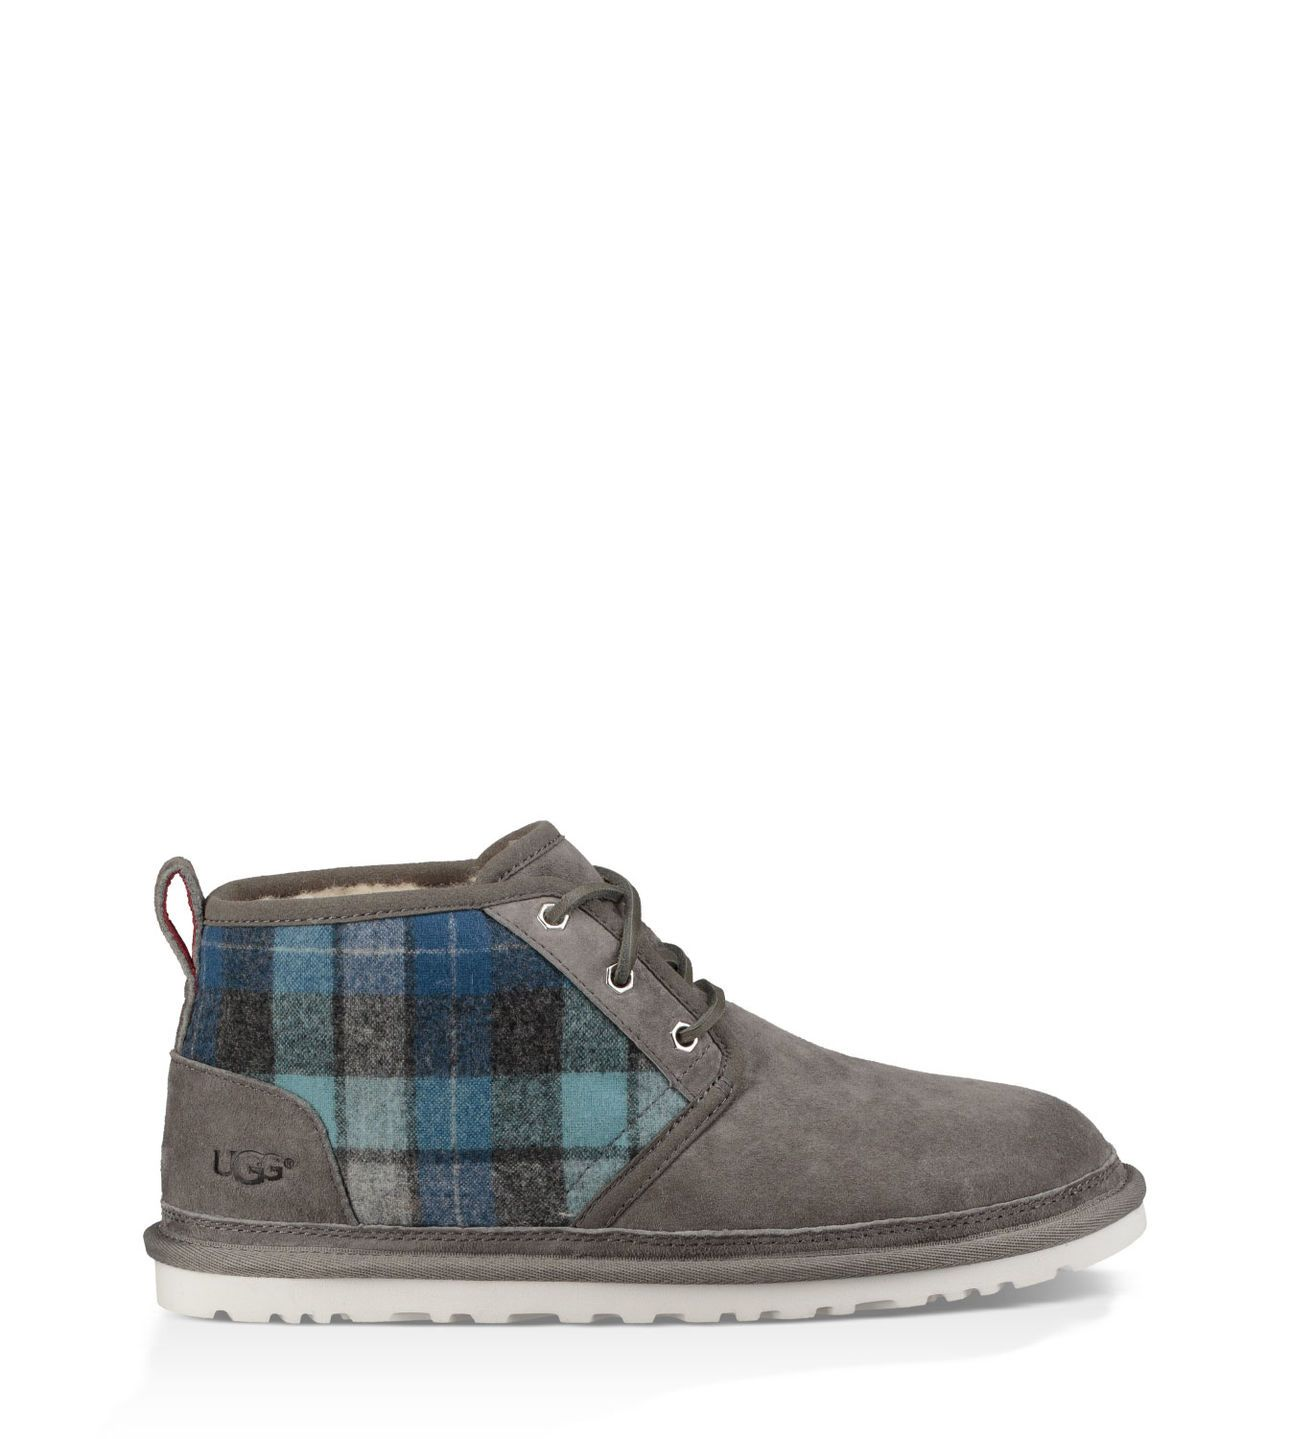 a60bf1da0fc Men's Share this product Neumel Surf Plaid | Shoes | Uggs ...